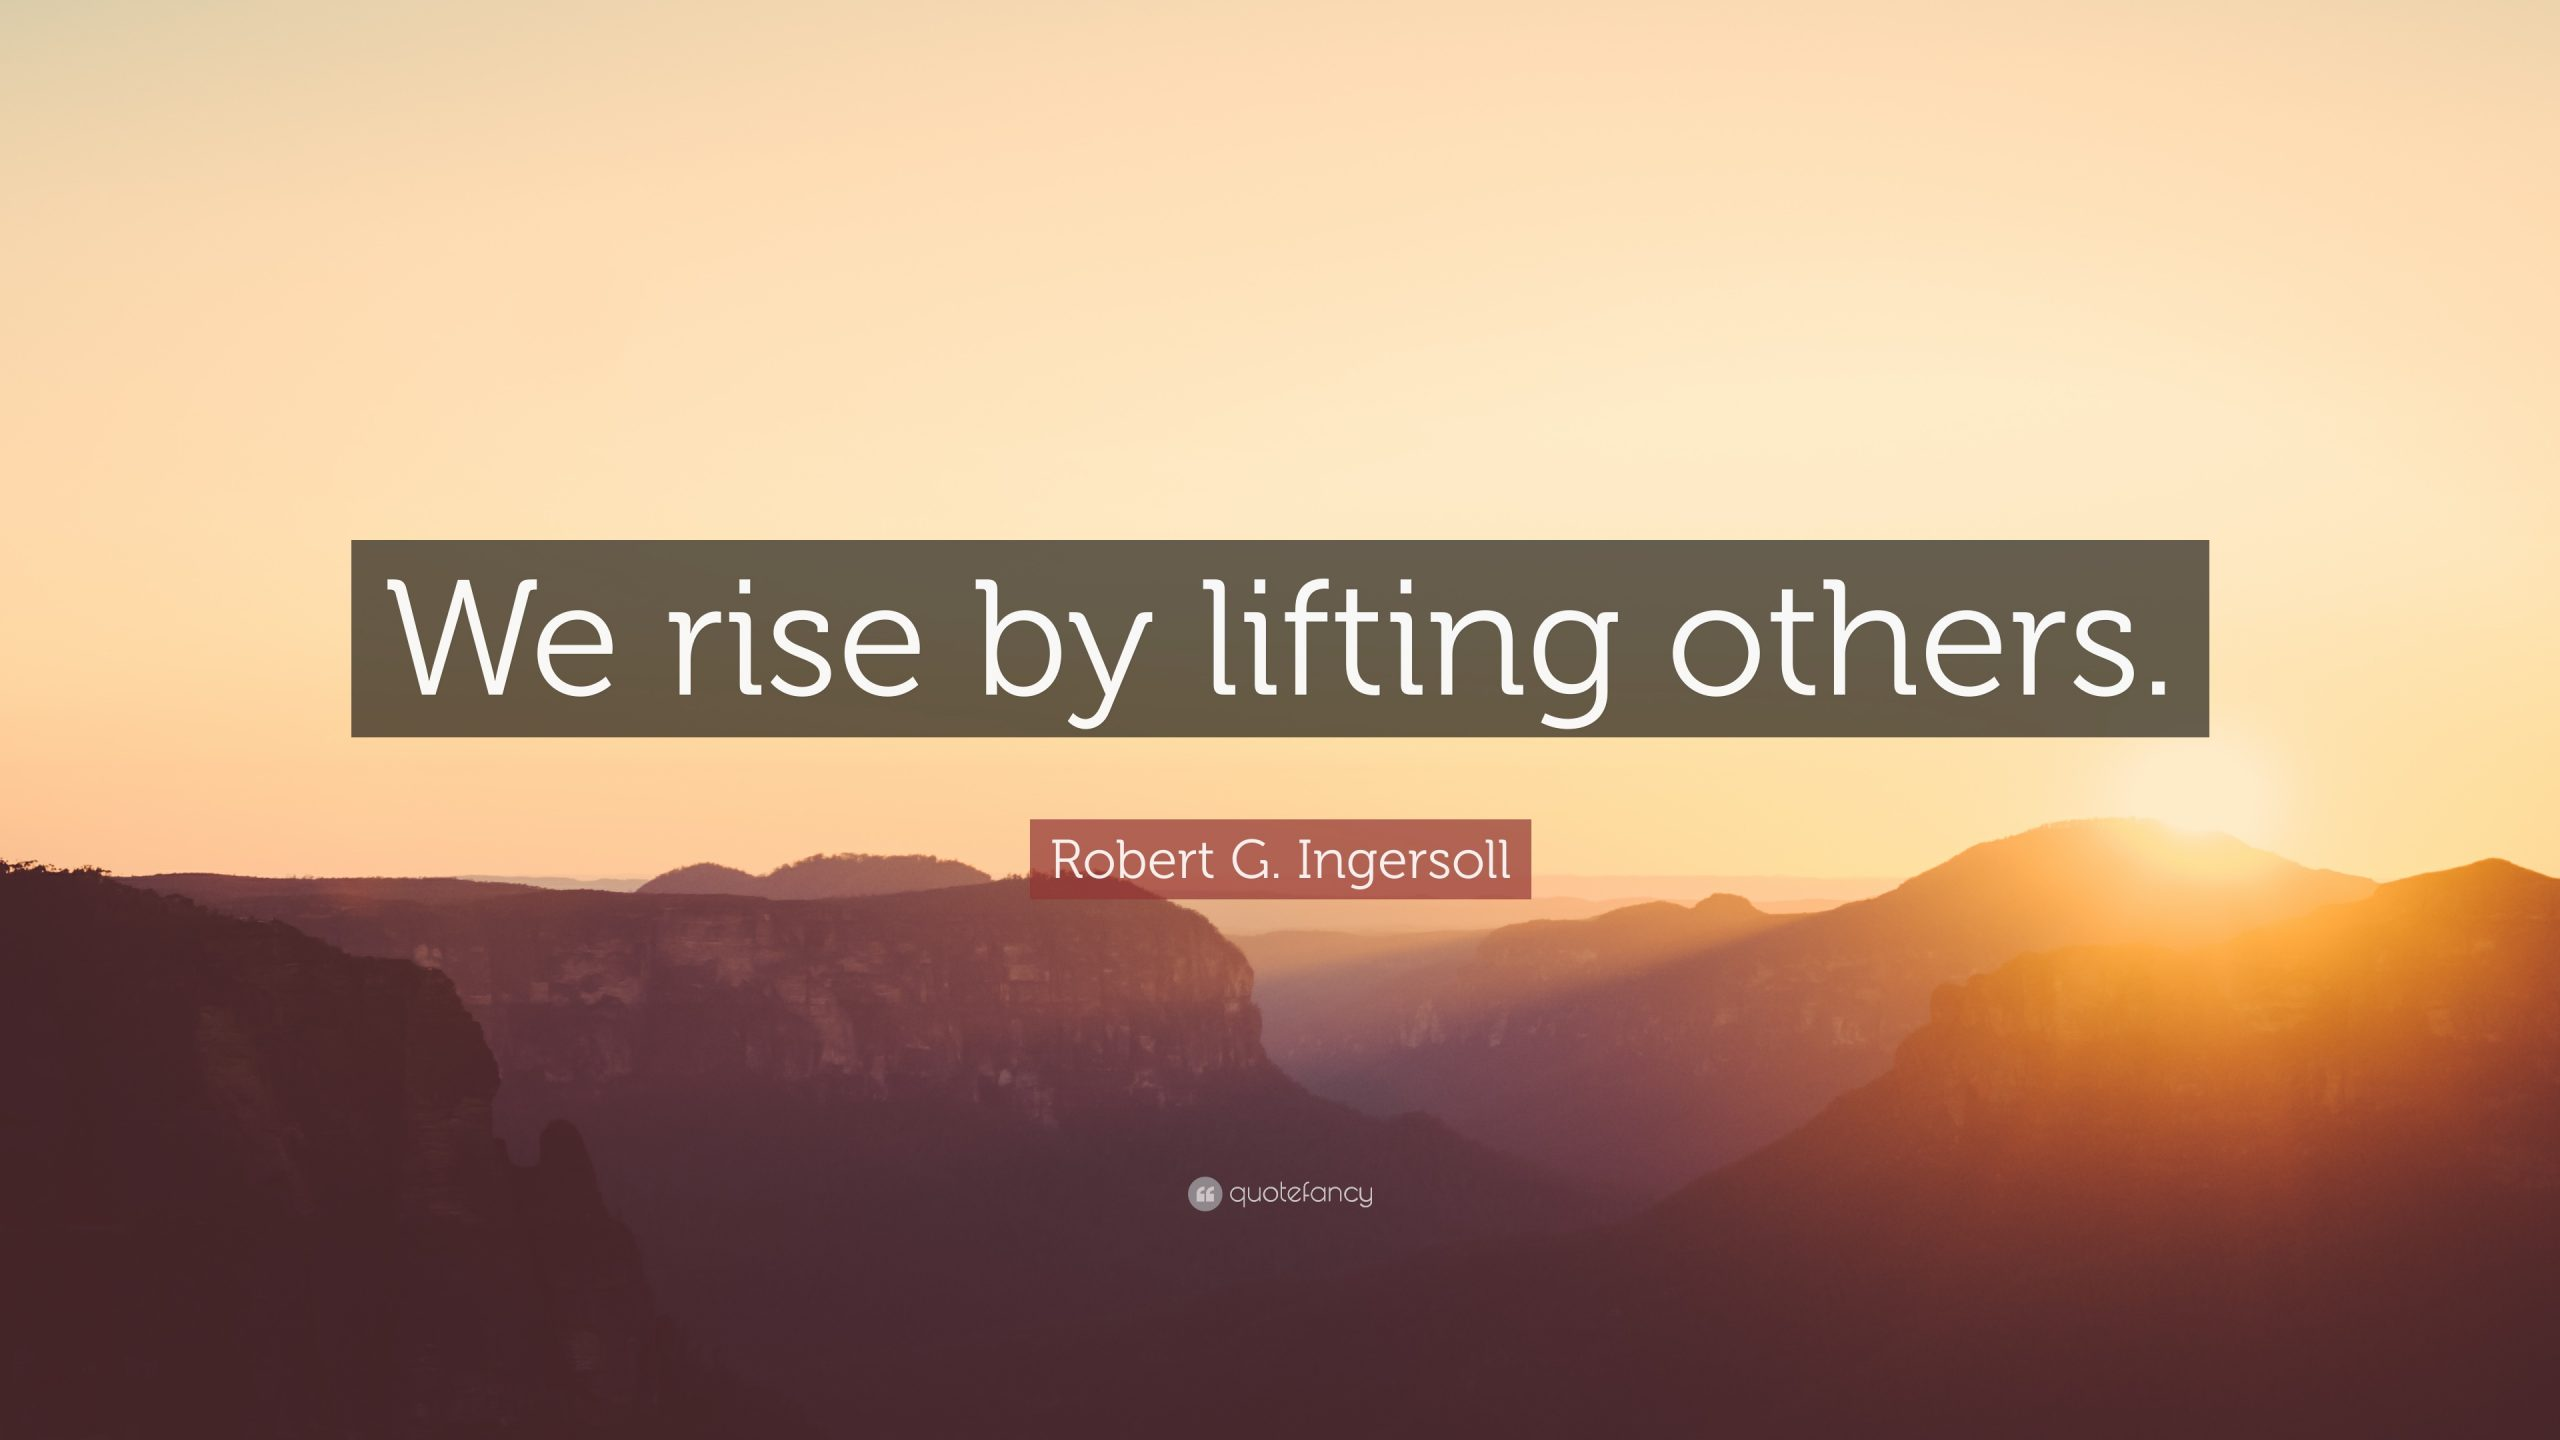 521071-Robert-G-Ingersoll-Quote-We-rise-by-lifting-others